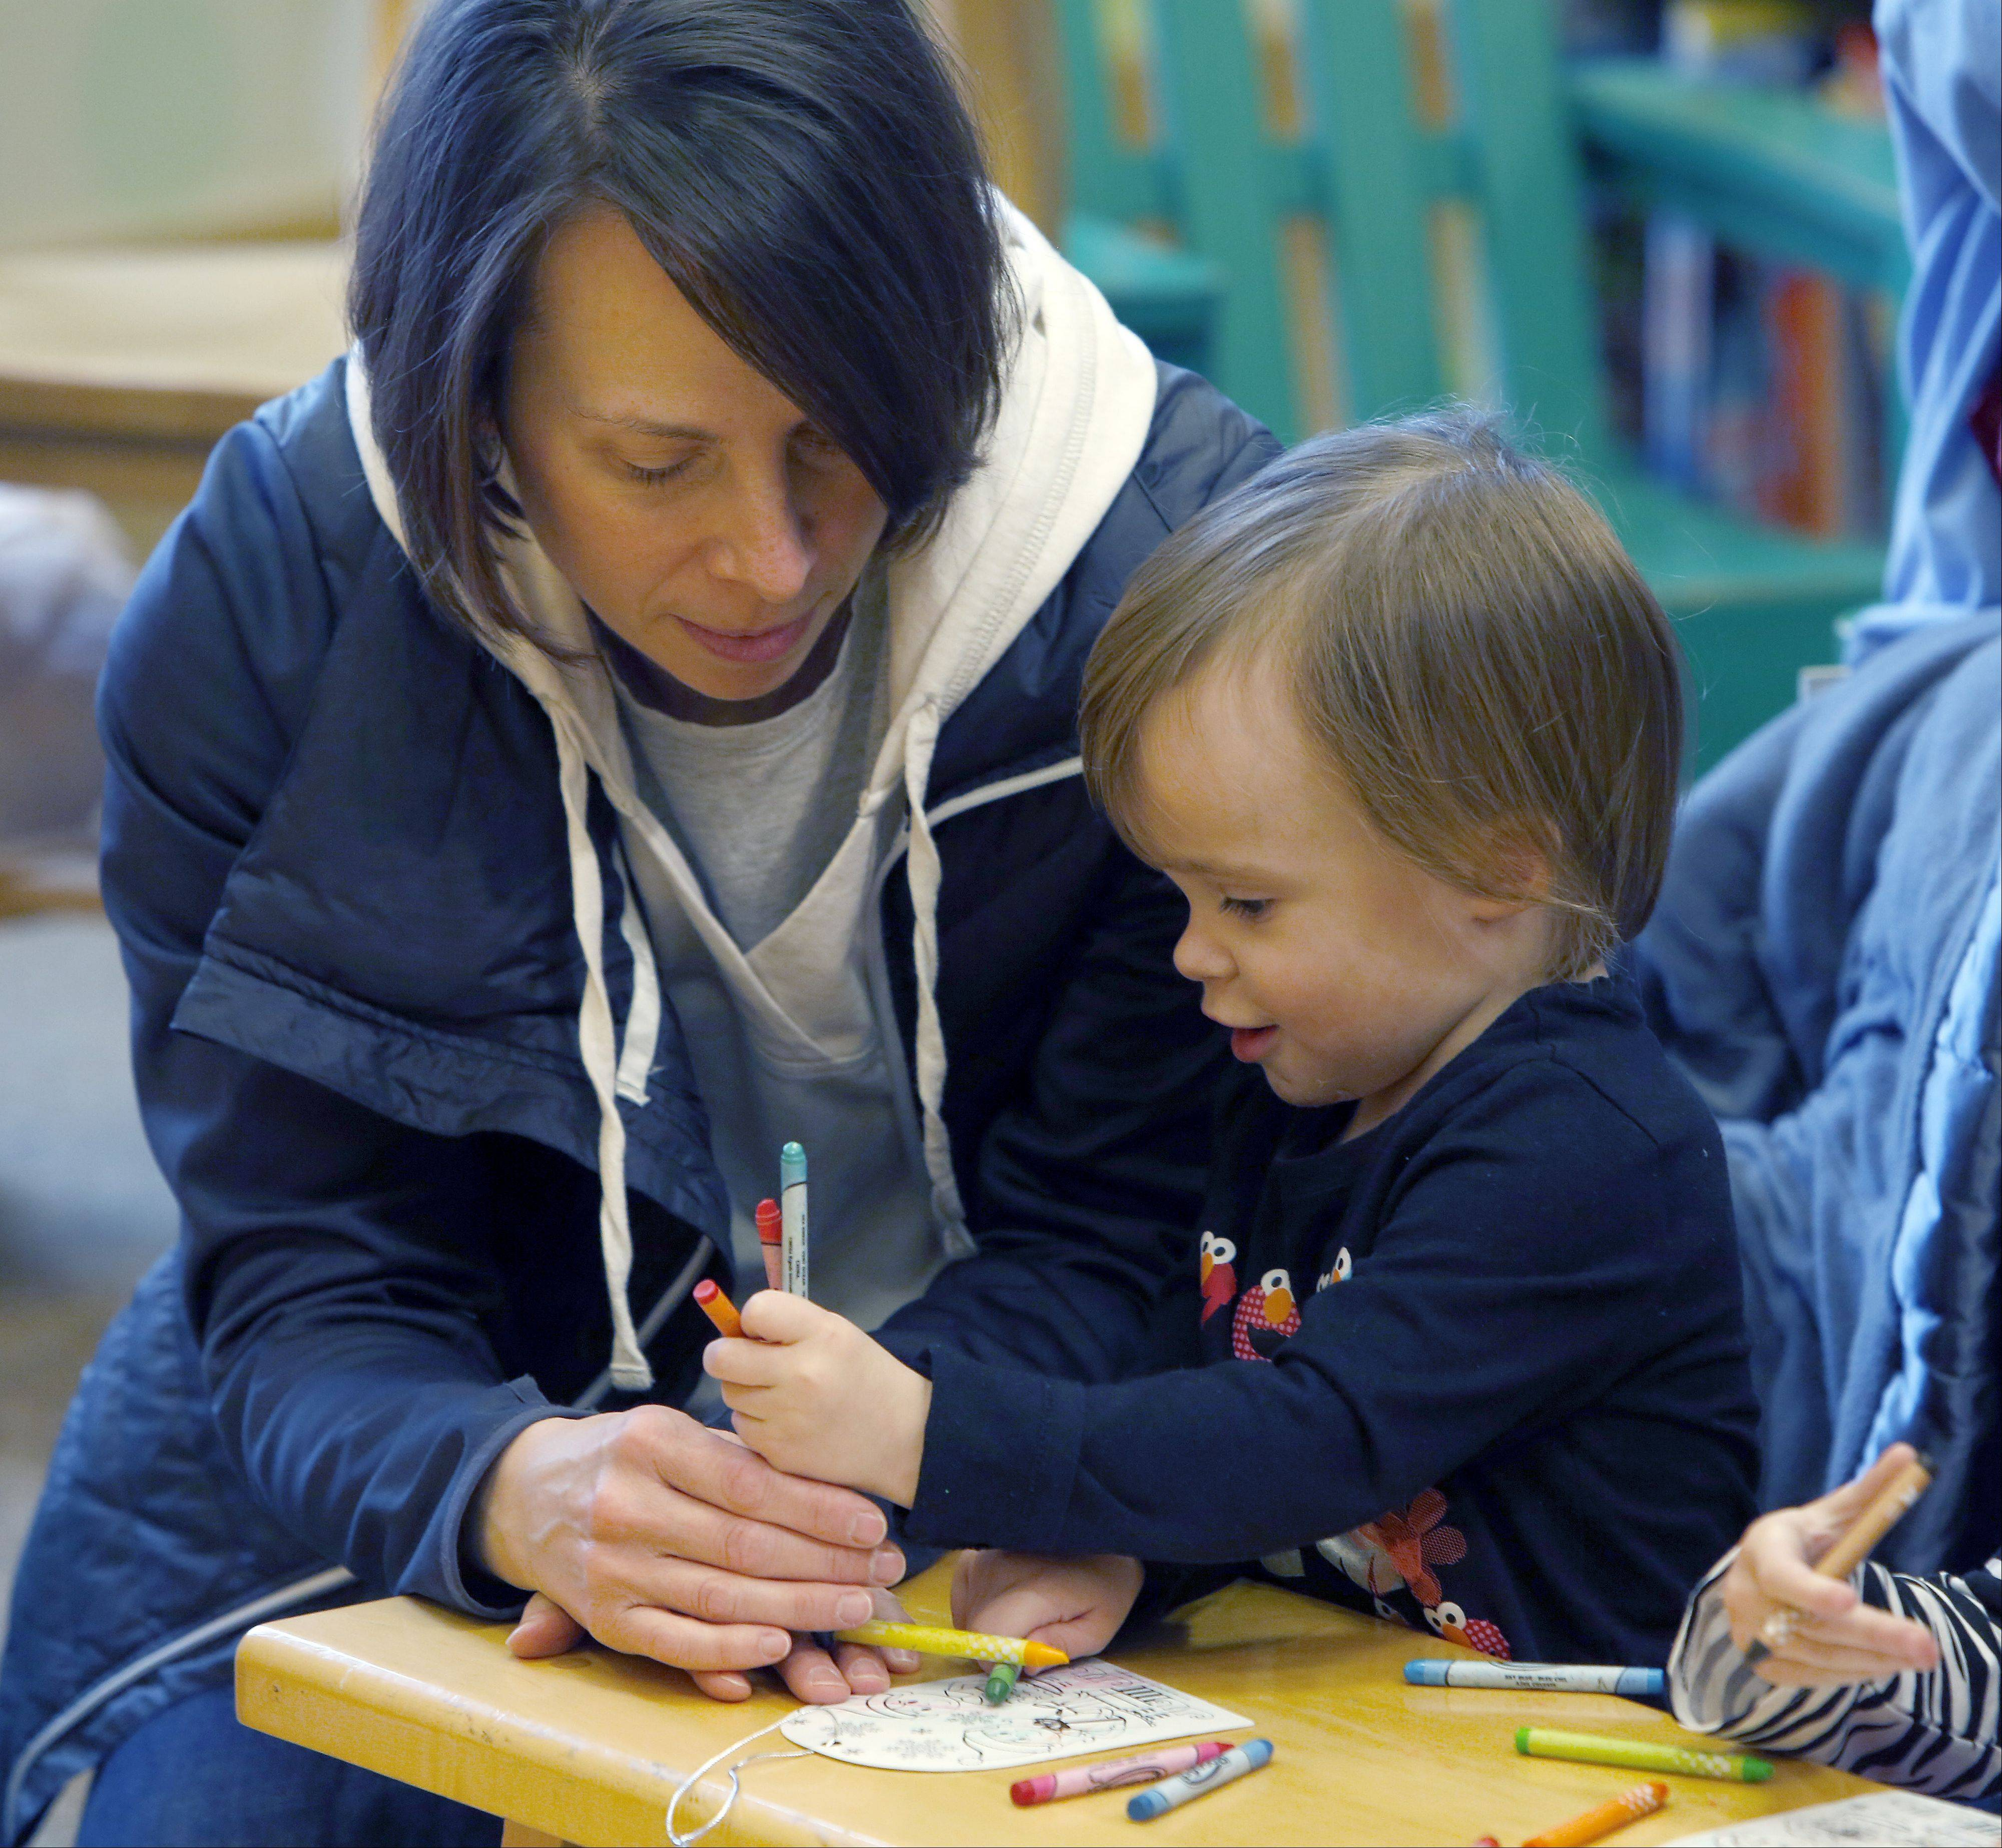 Amy Schram of Elgin helps her daughter Molly, 2�, color an ornament during story time Tuesday at the Barnes & Noble at Spring Hill Mall in West Dundee.